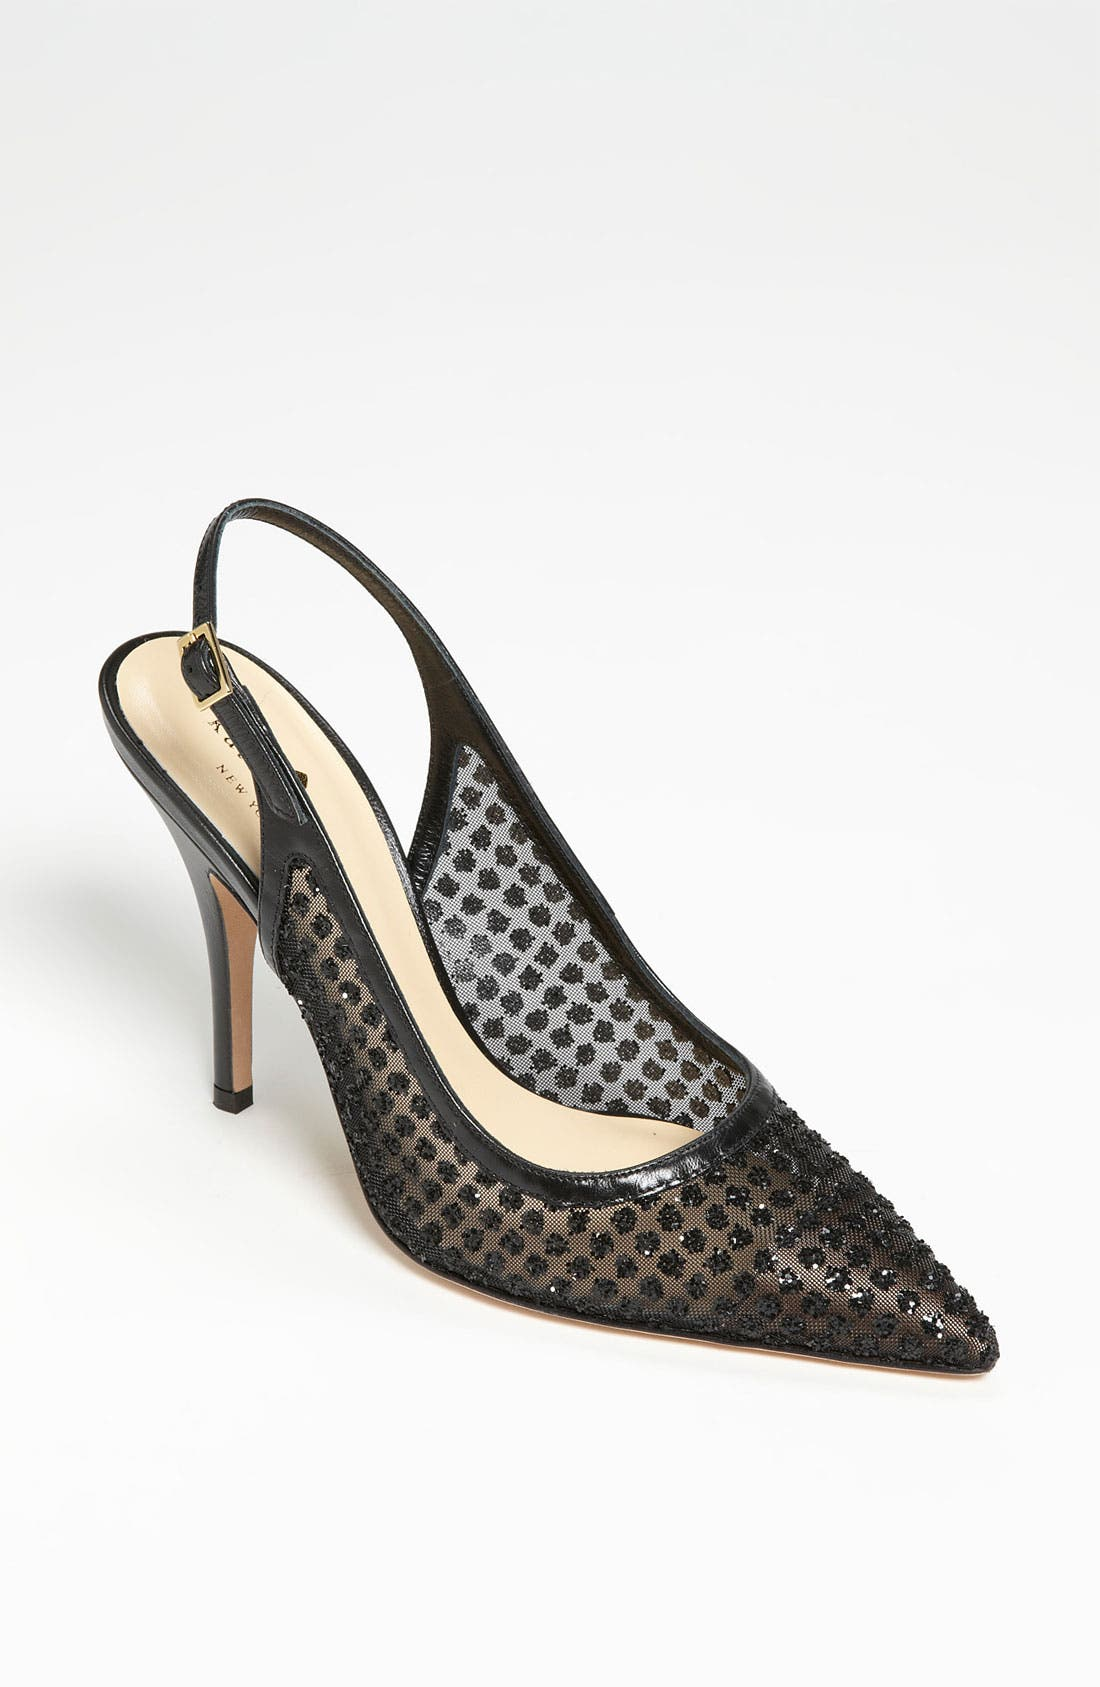 Alternate Image 1 Selected - kate spade new york 'lynn' pump